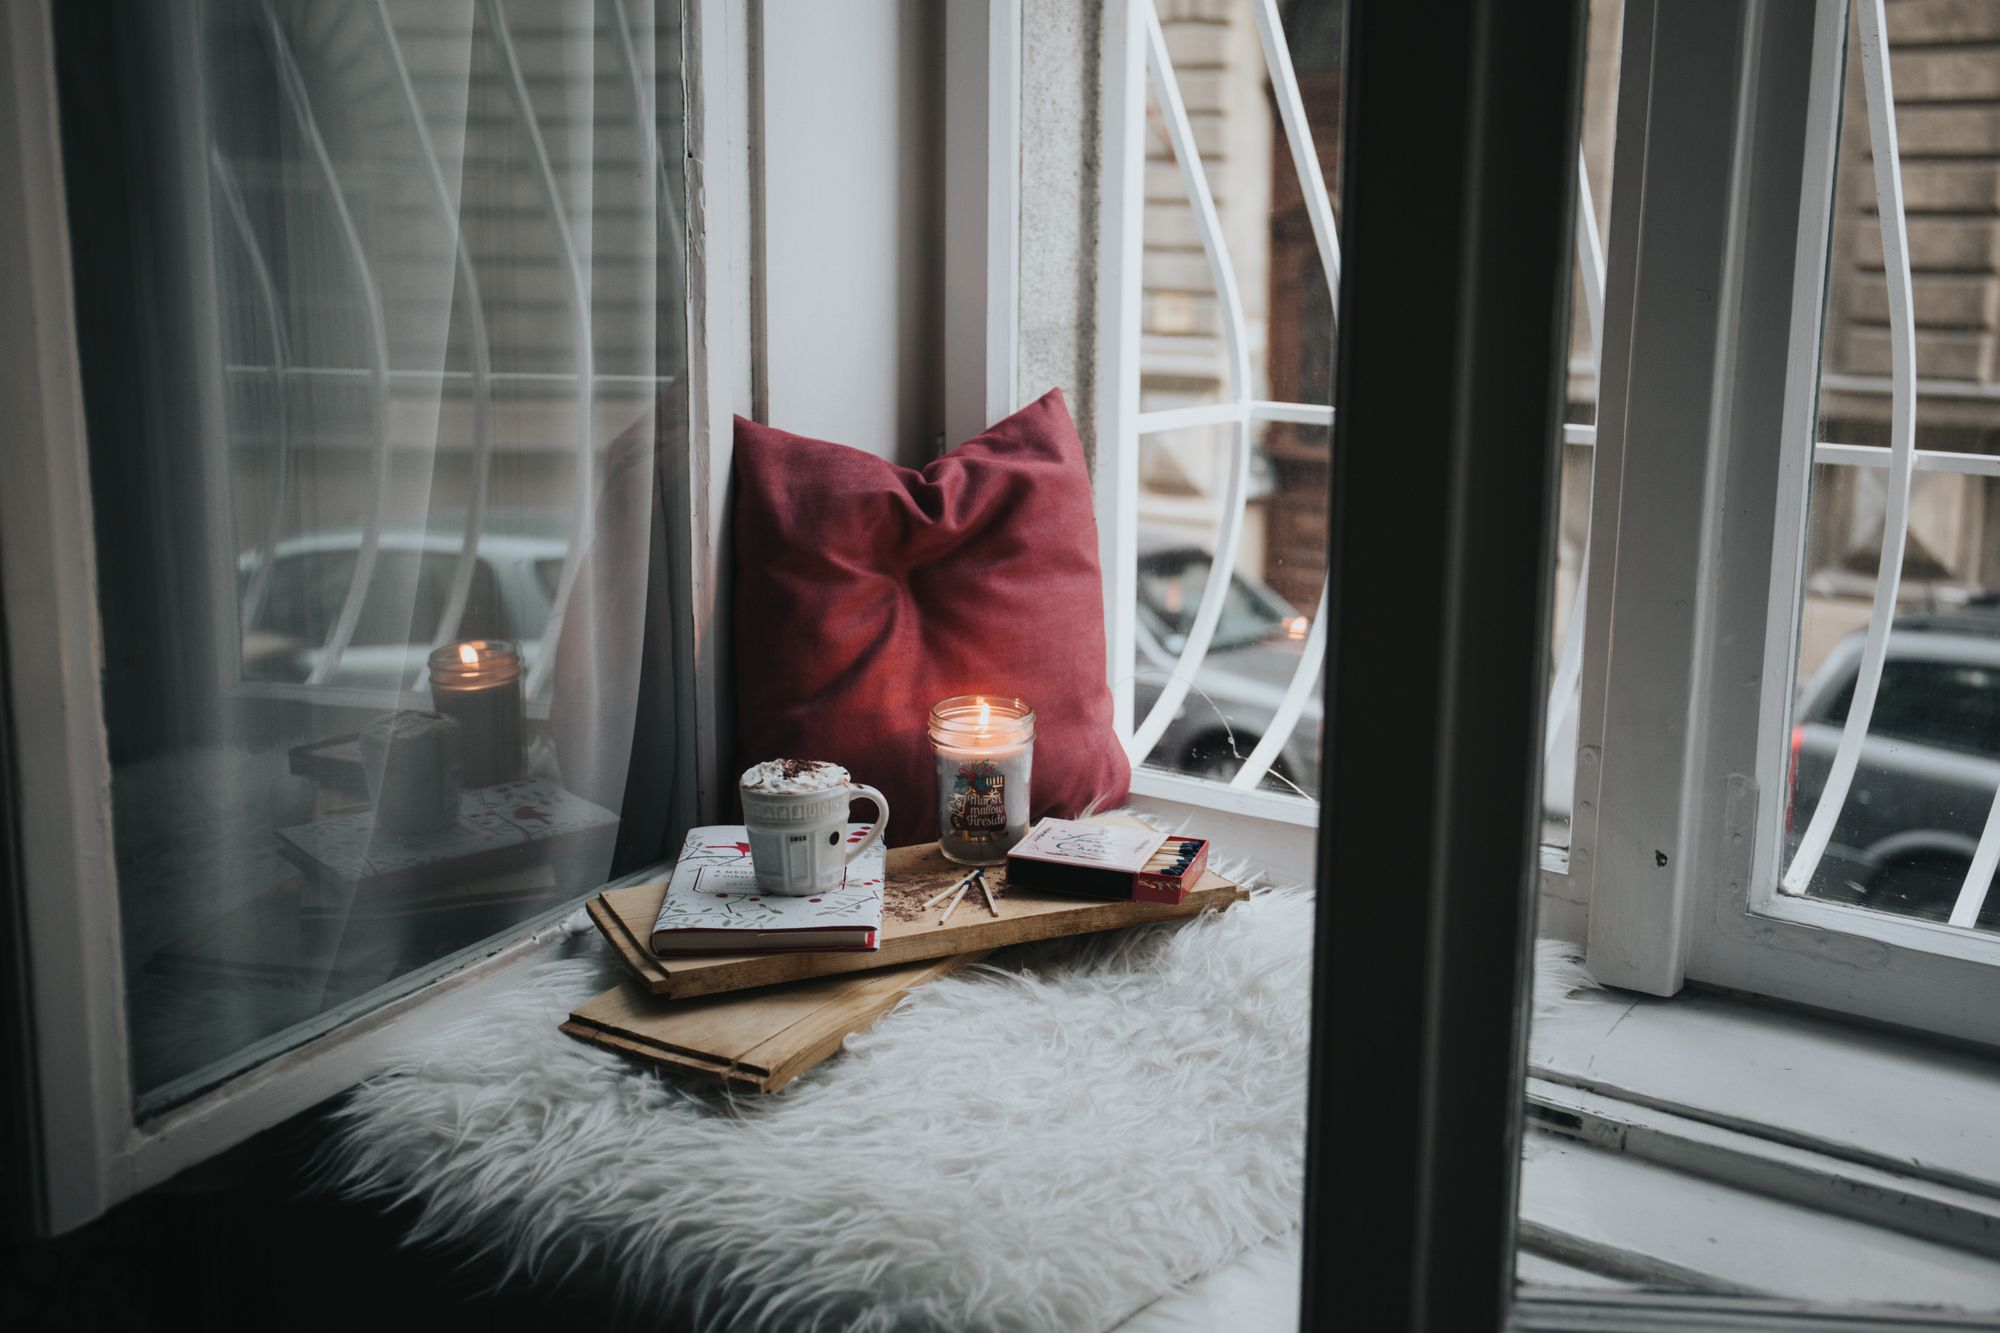 diary cup and window